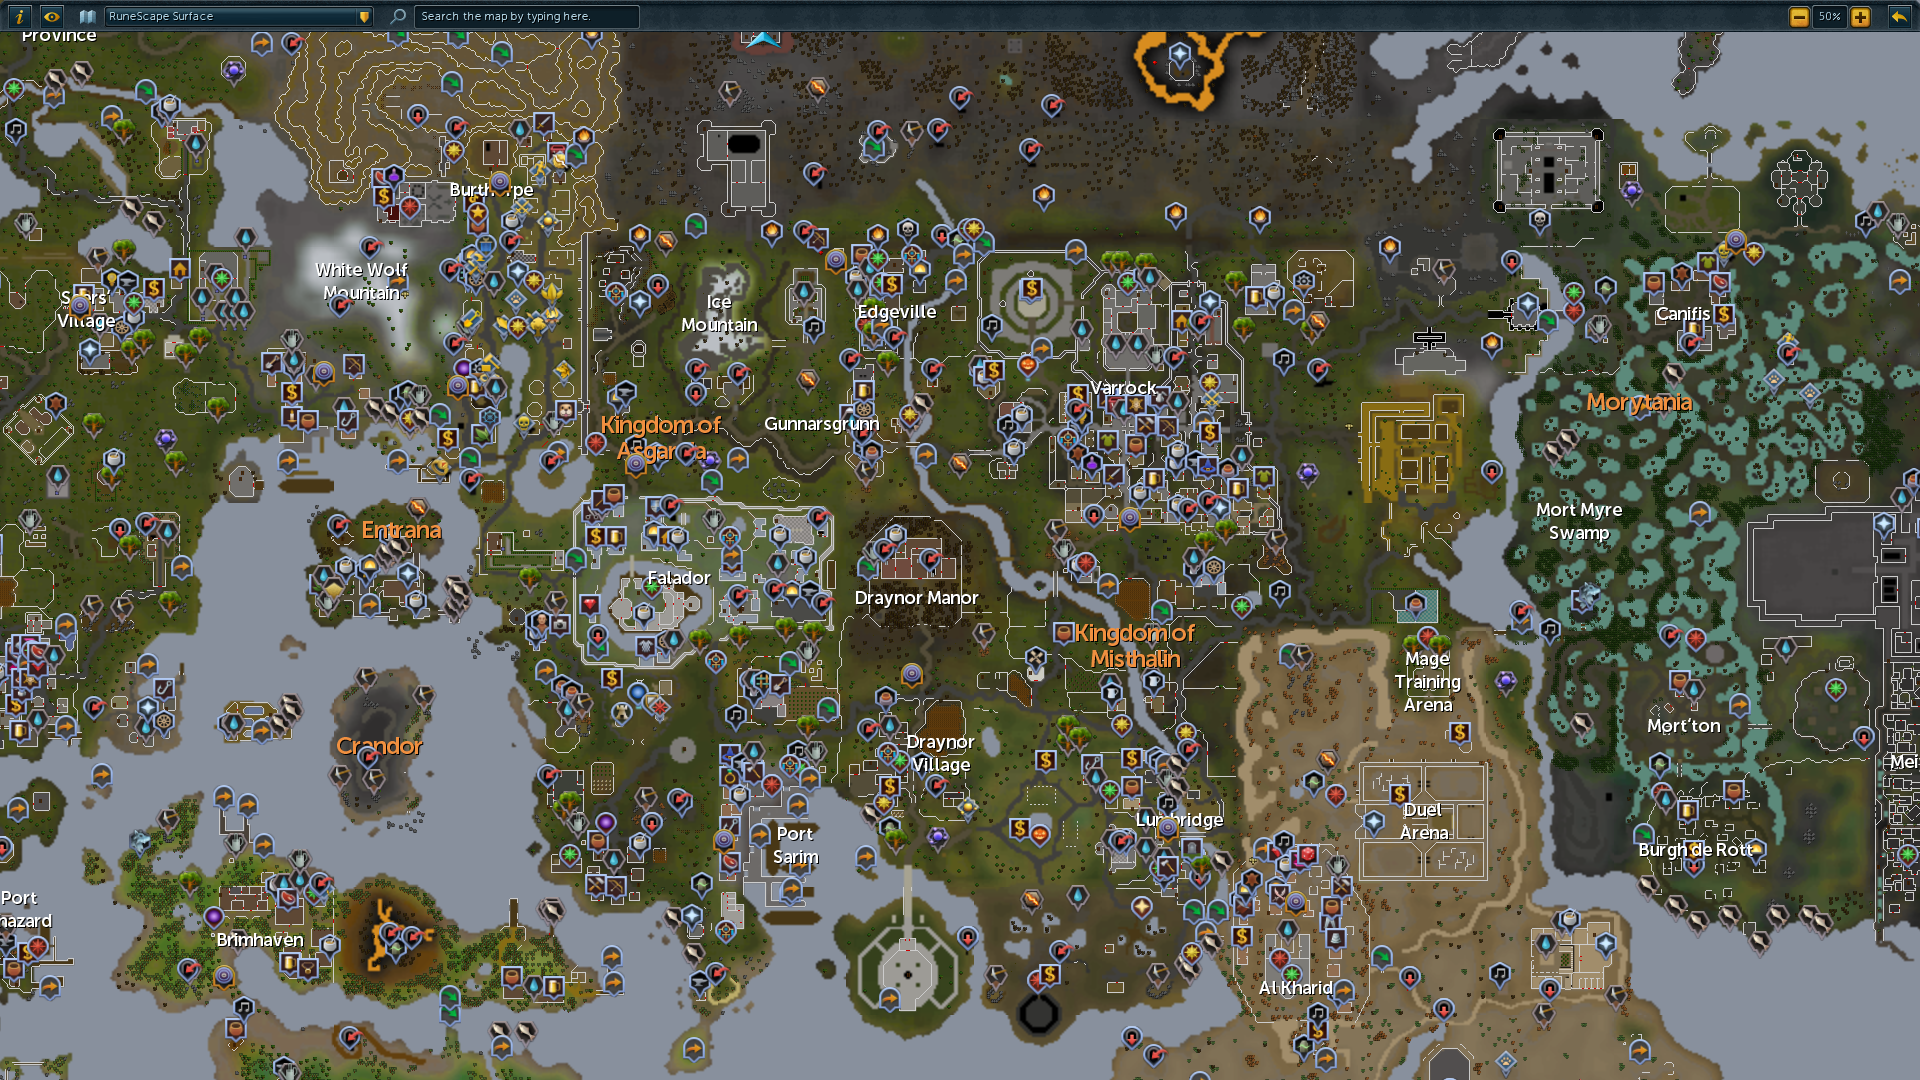 Old Runescape World Map.World Map Runescape Wiki Fandom Powered By Wikia